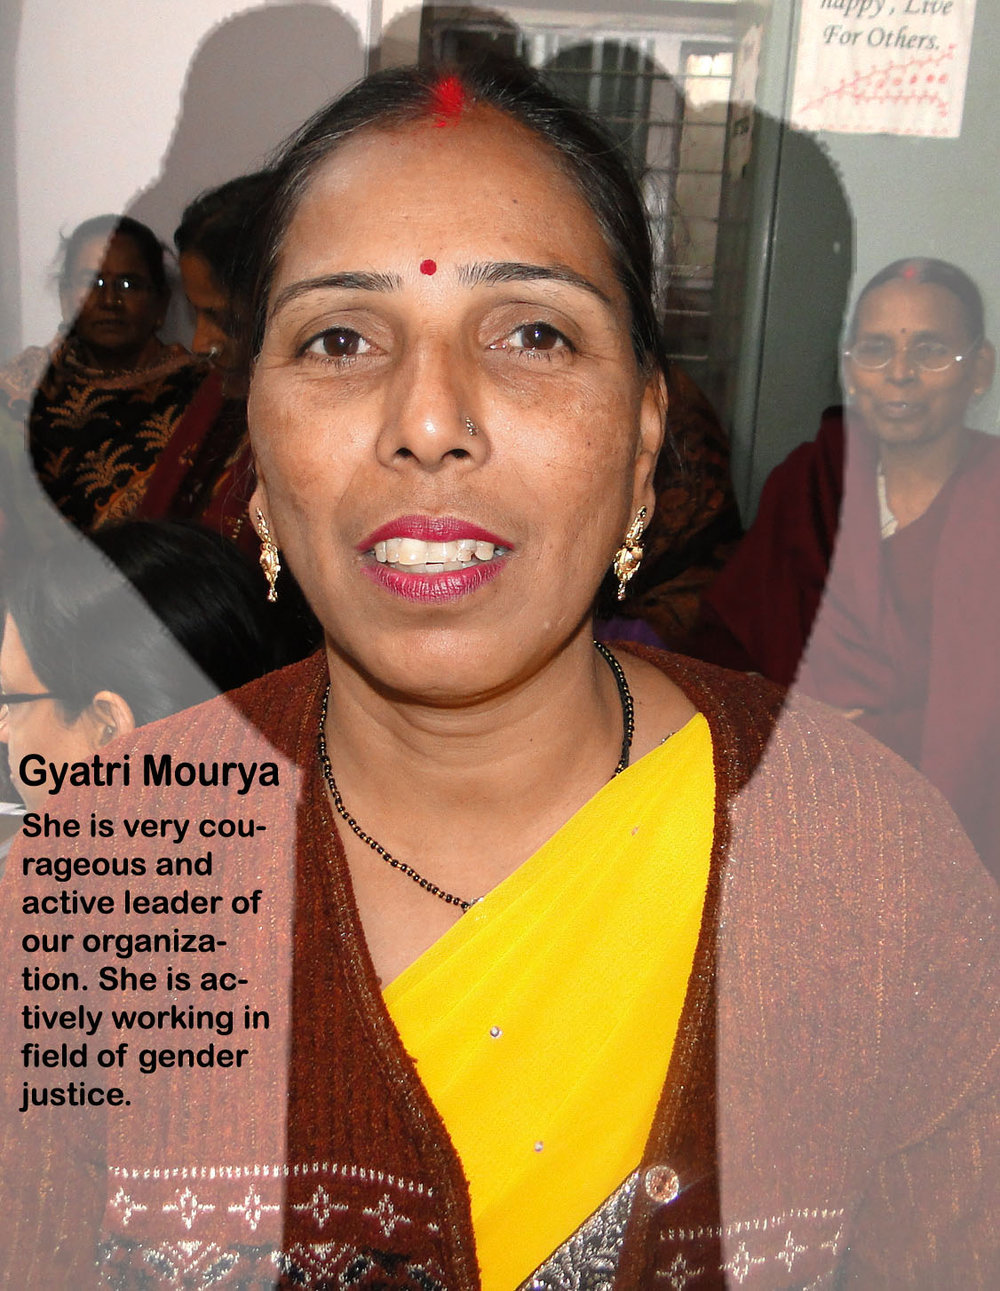 Gayati mourrya women human right defender--.jpg